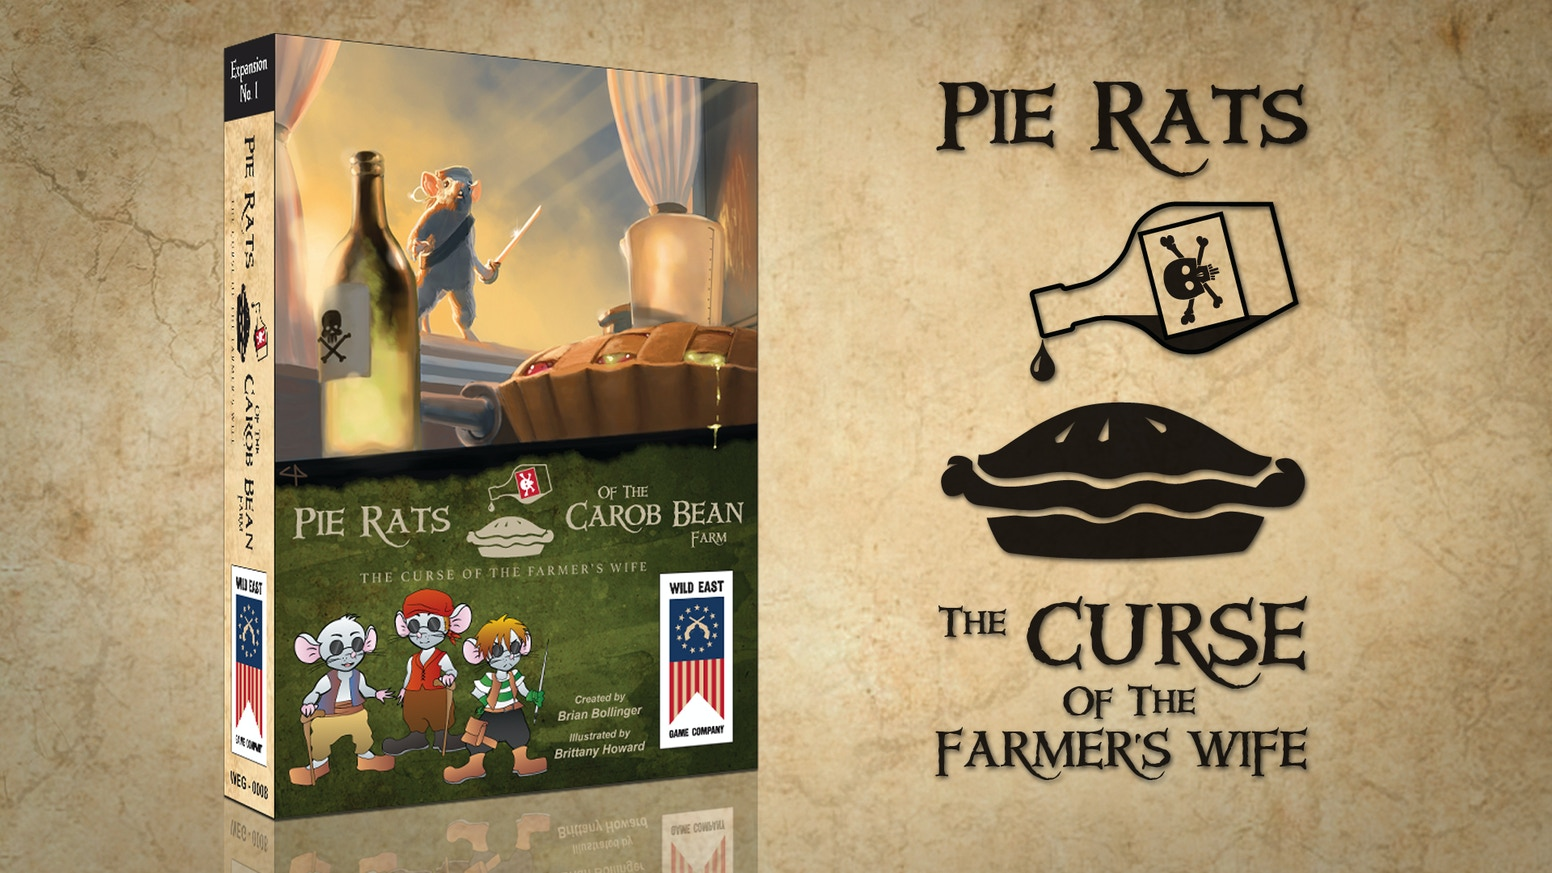 Pie Rats, The Curse of the Farmer's Wife